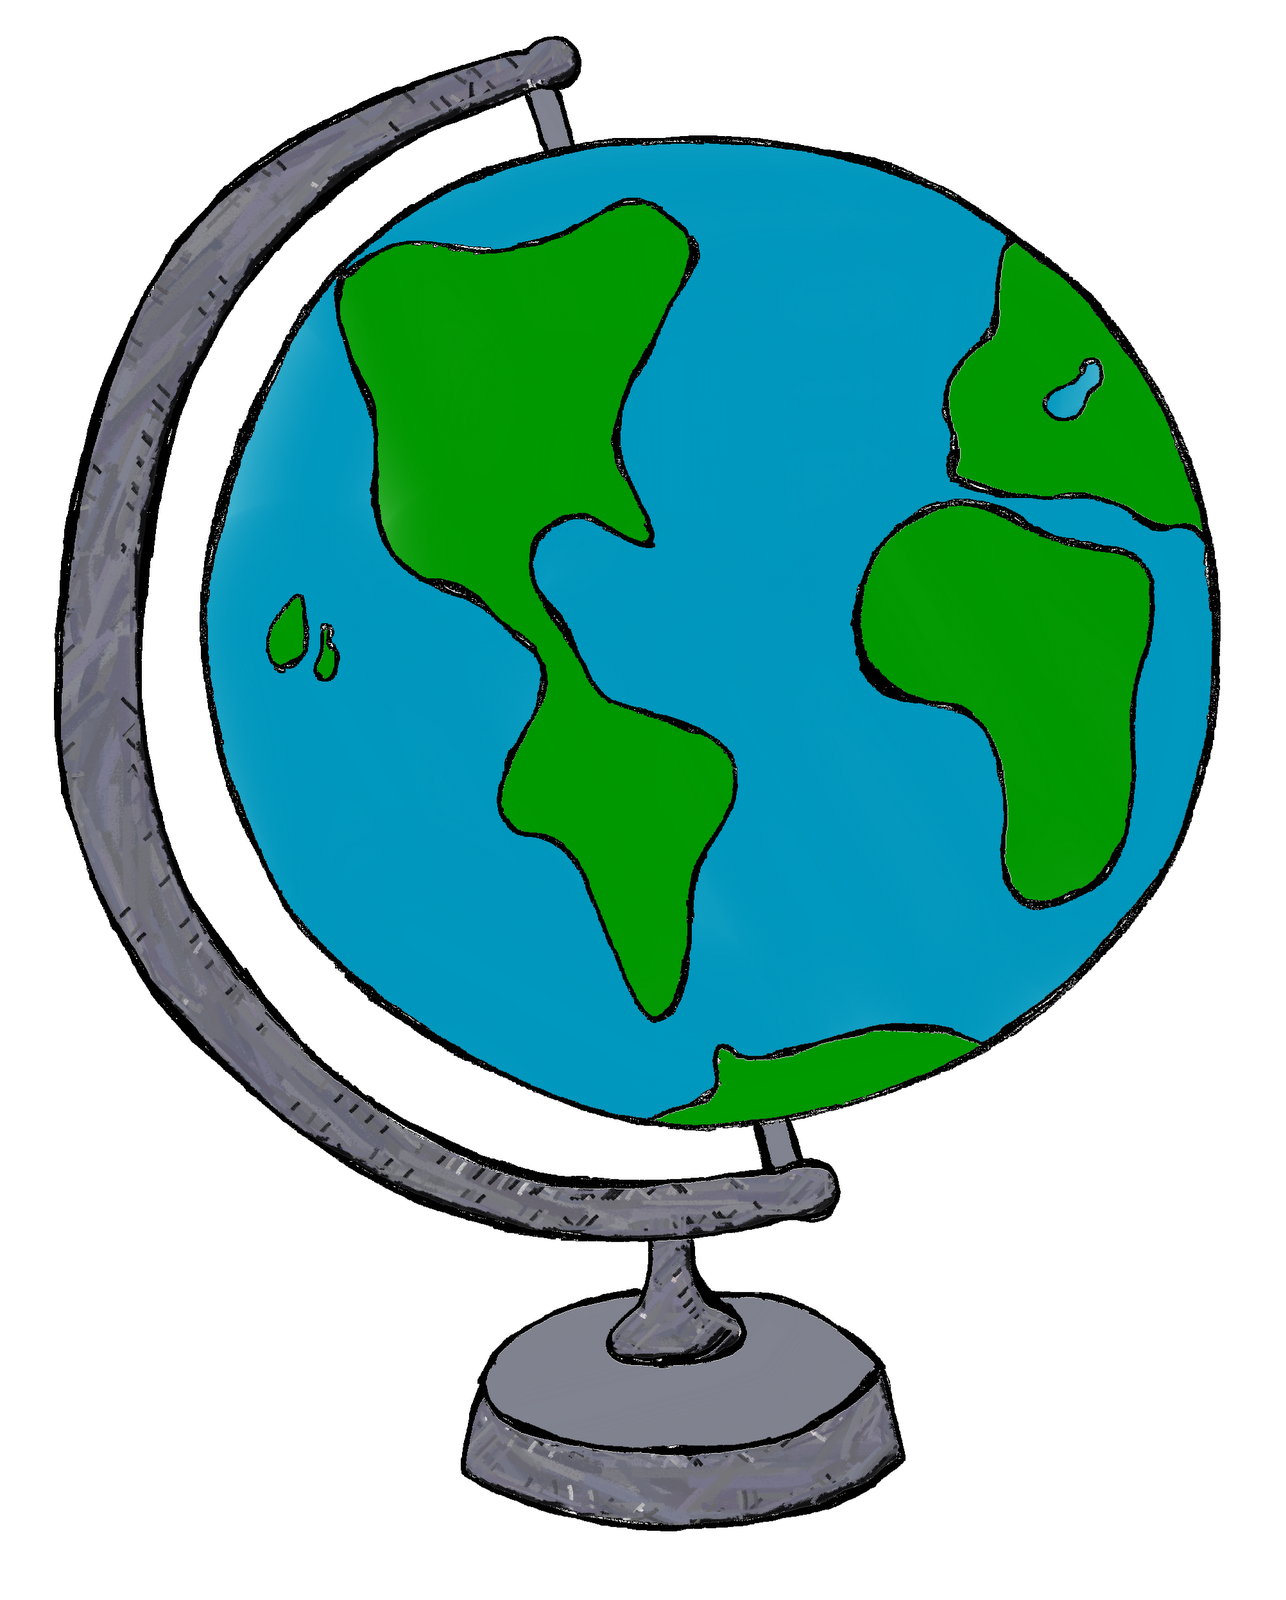 1286x1600 Earth Globe Clipart Black And White Free Clipart Images